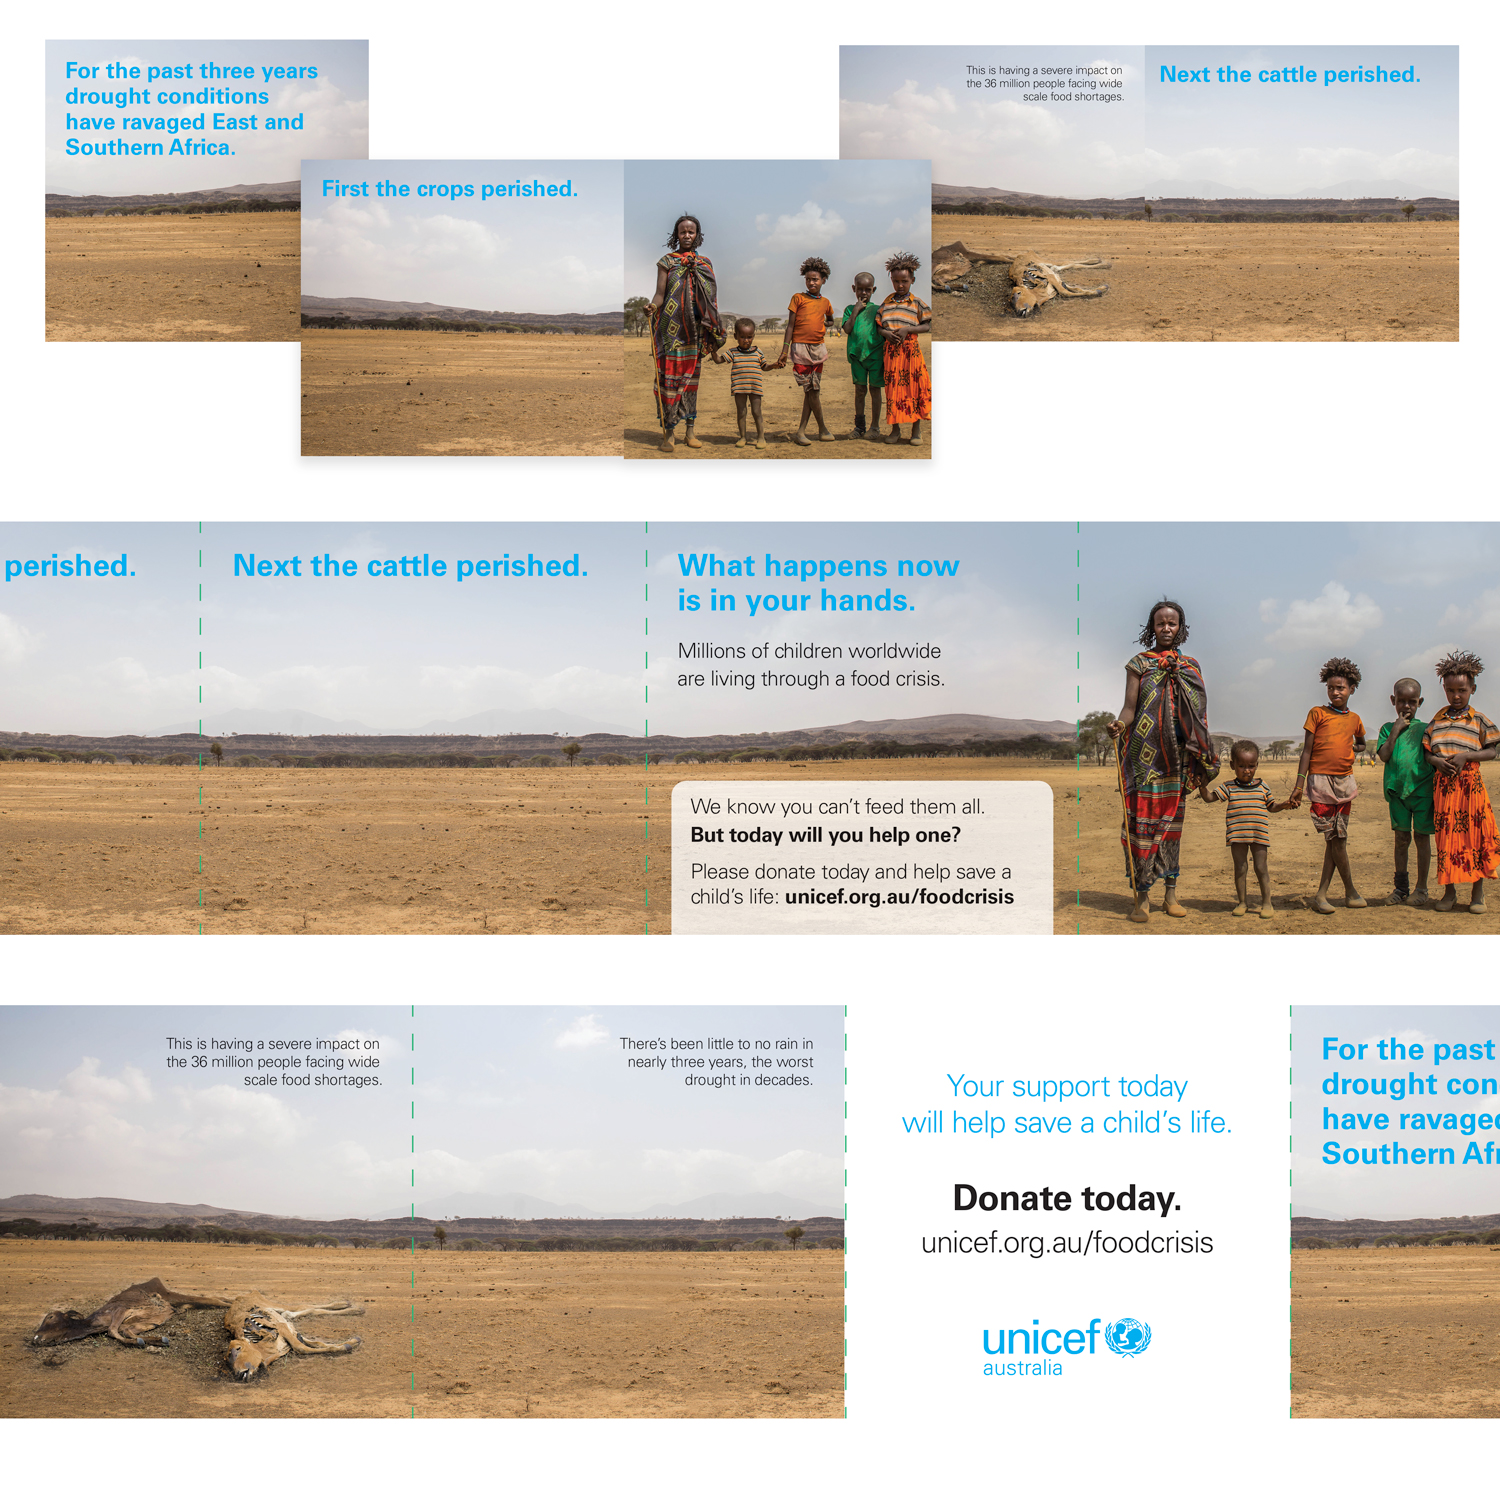 Image of a square roll fold brochure for UNICEF Australia. This was to raise donations for issues stemming from a large drought in Eastern and Southern Africa in 2017.